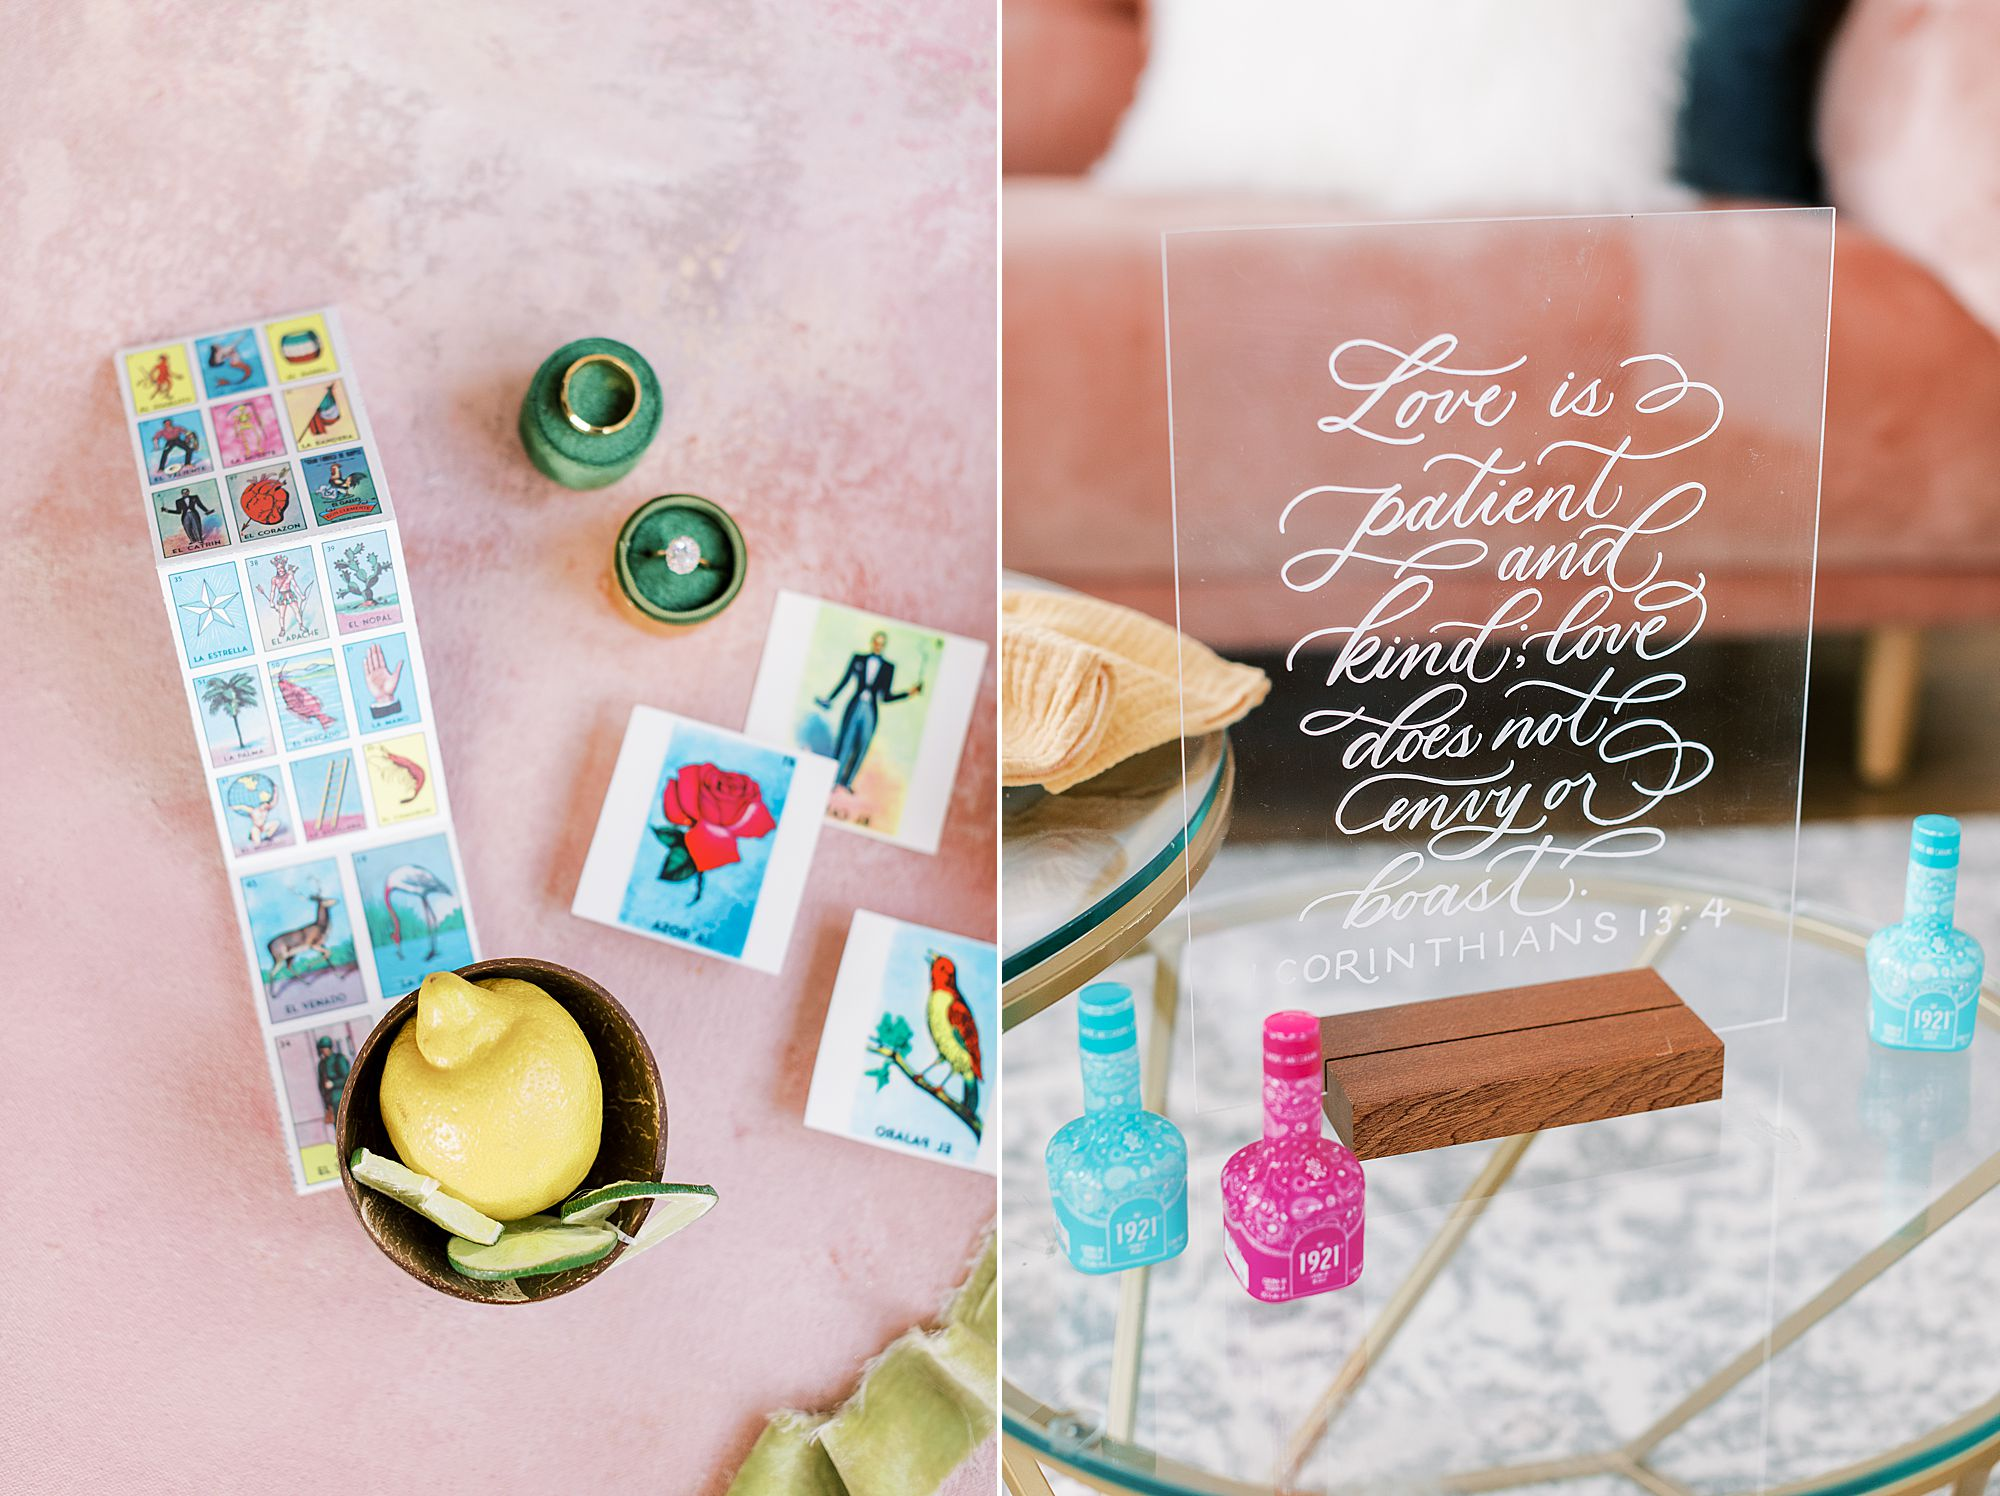 Cinco De Mayo Inspiration for Your FIesta - Party Crush Studio and Ashley Baumgartner_0010.jpg